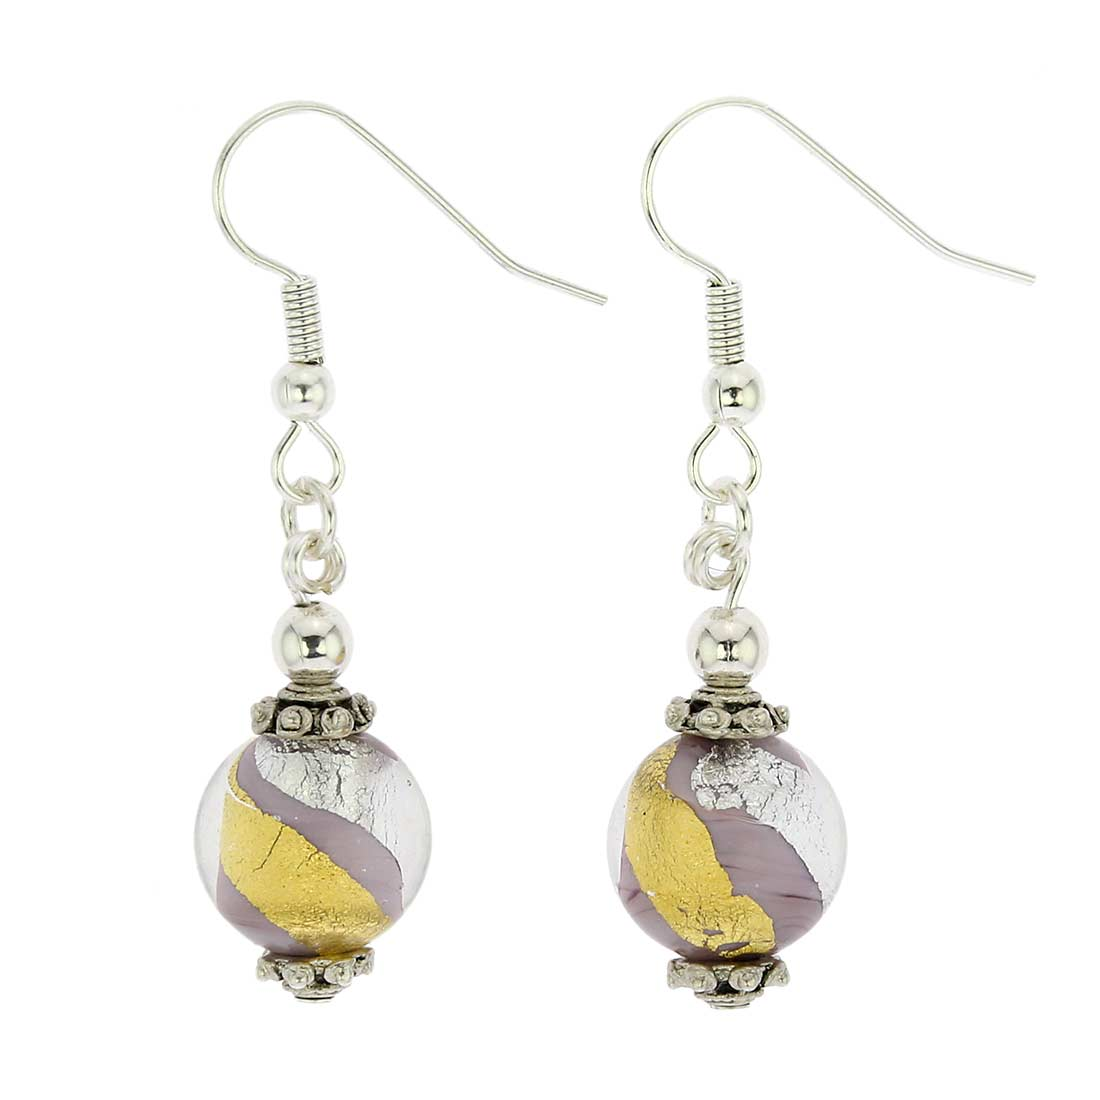 Antico Tesoro Balls Earrings - Purple Gold and Silver